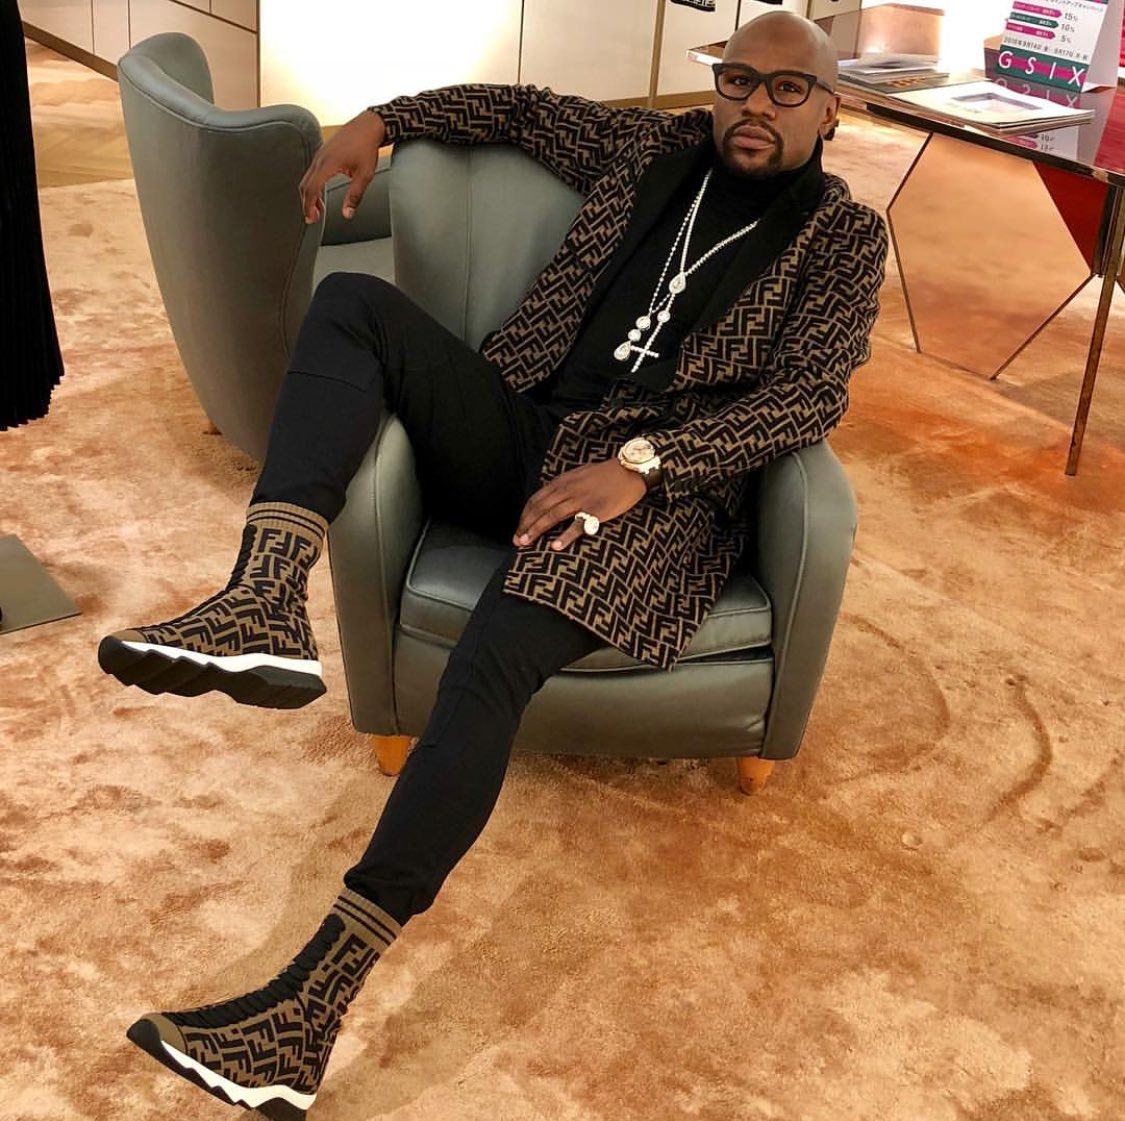 Fendi Floyd: Mayweather Sports The Iconic Italian Fashion Line Down To The Socks